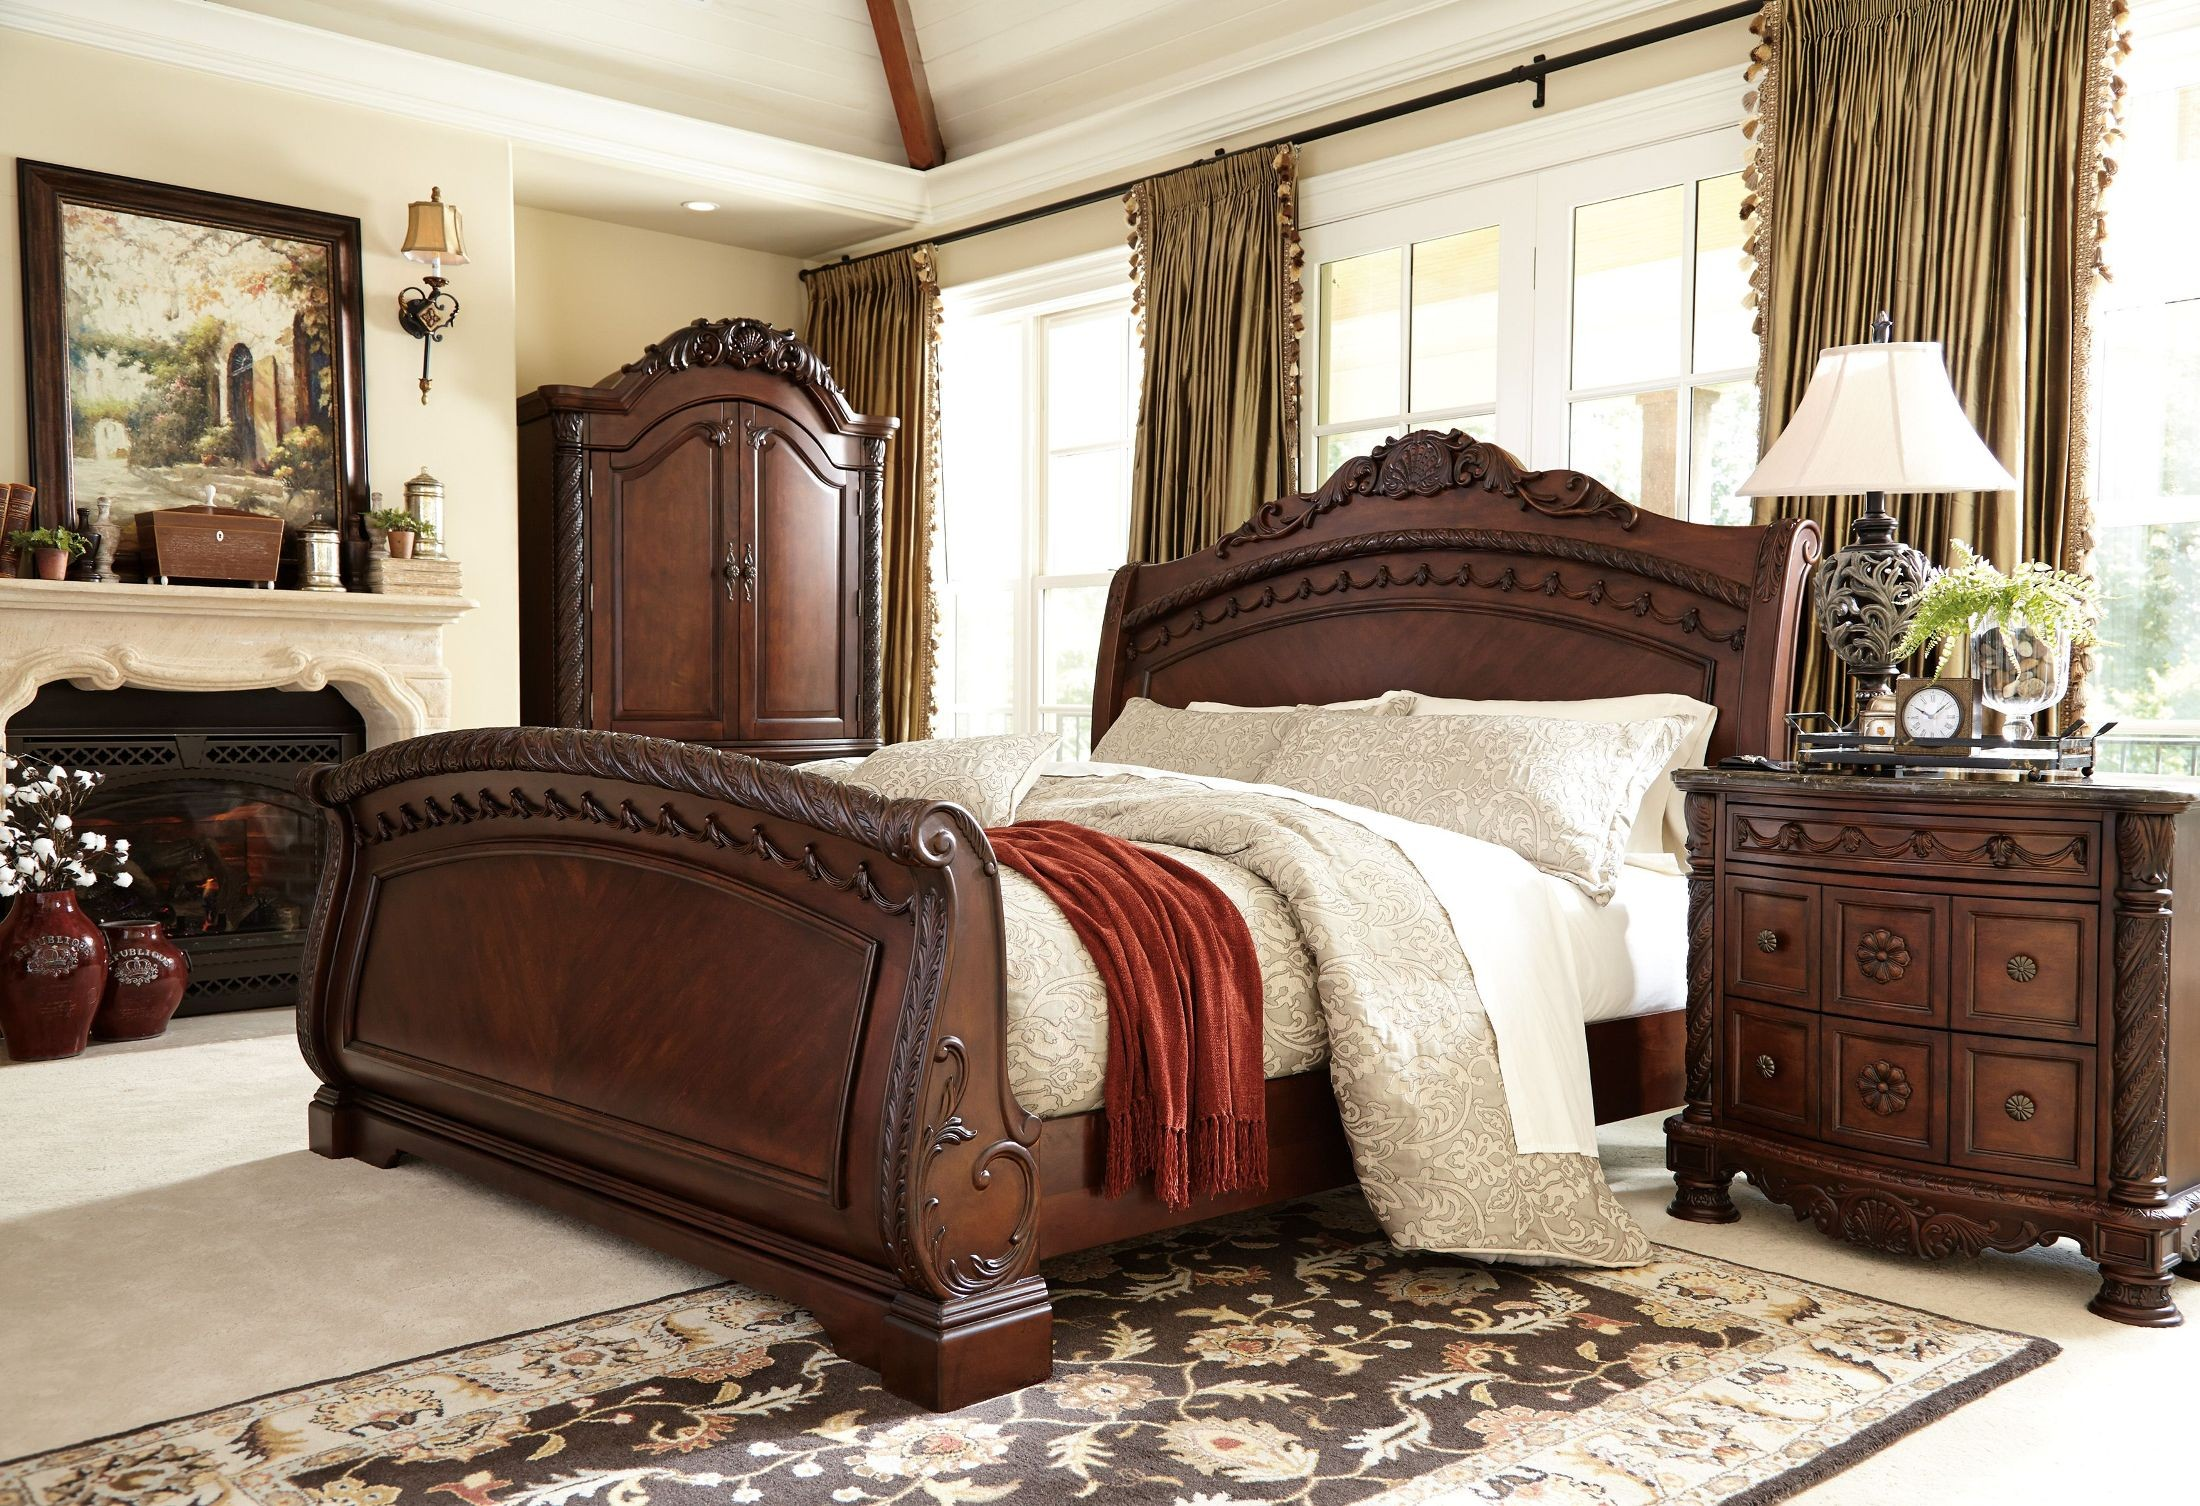 North Shore Sleigh Bedroom Set2302111. 2302052. 550246